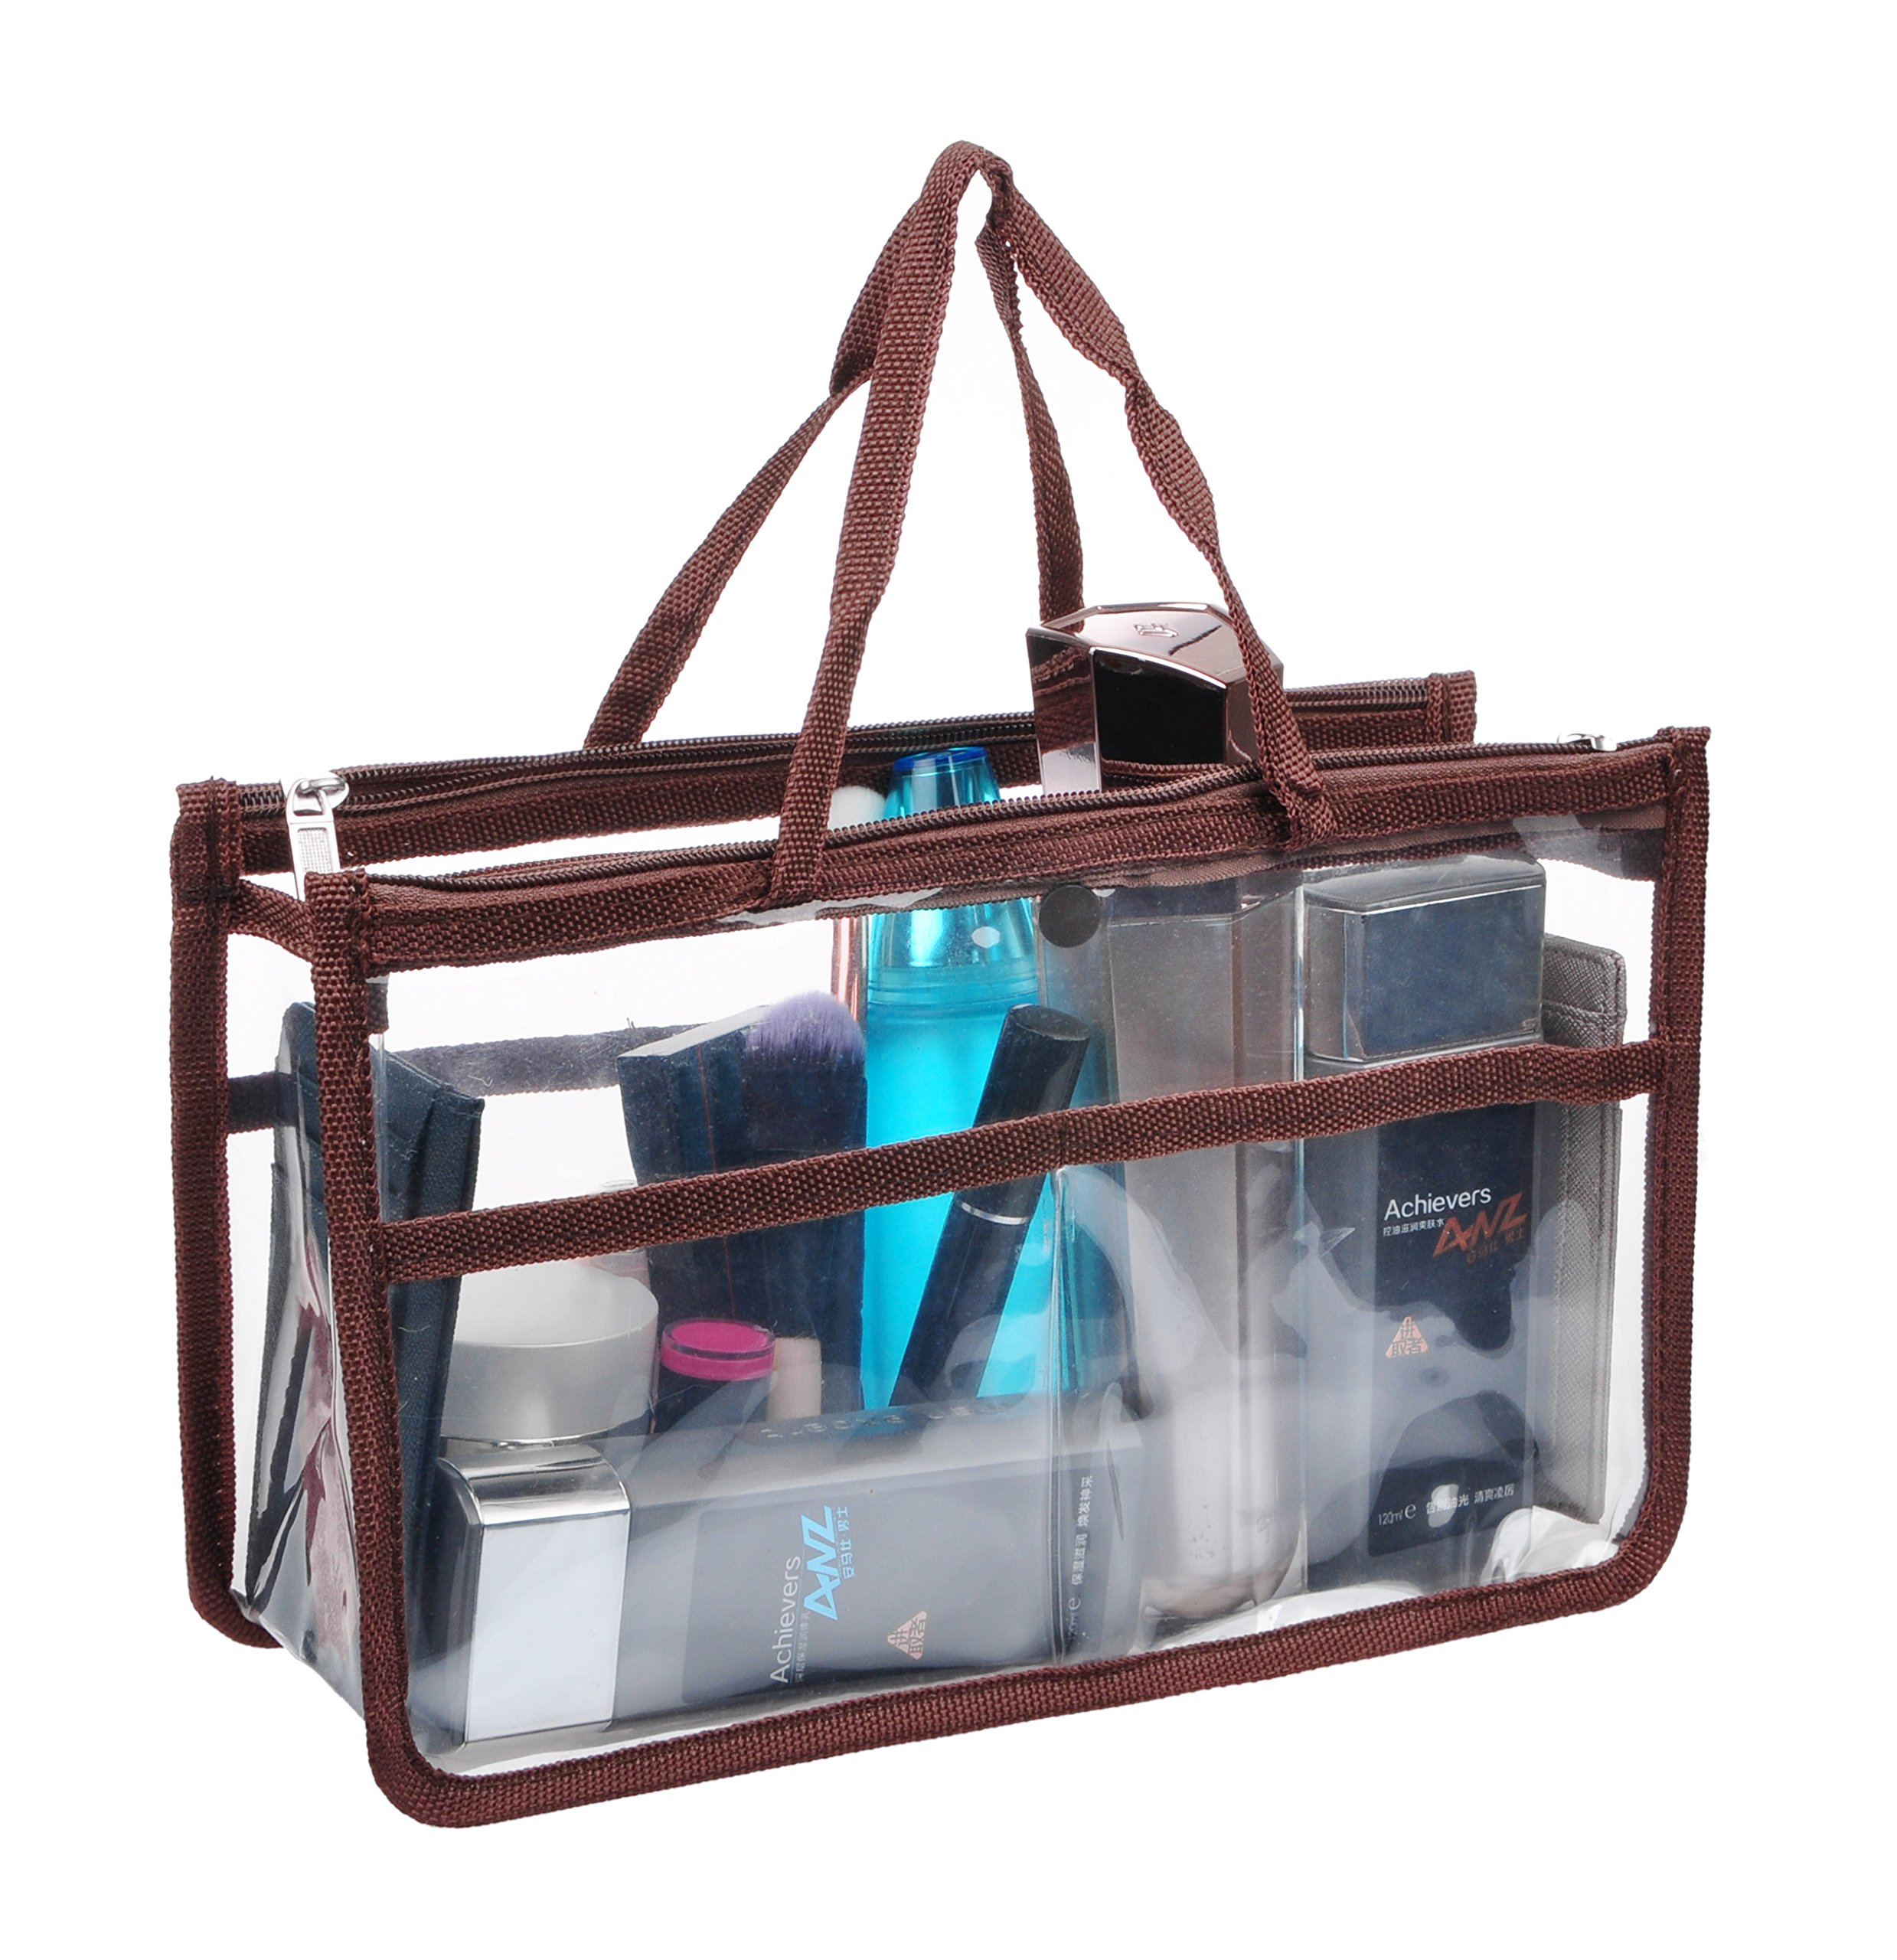 Vercord Clear Handbag Purse Tote Insert Organizer Liner Bag In Bag with Handle, Coffee L